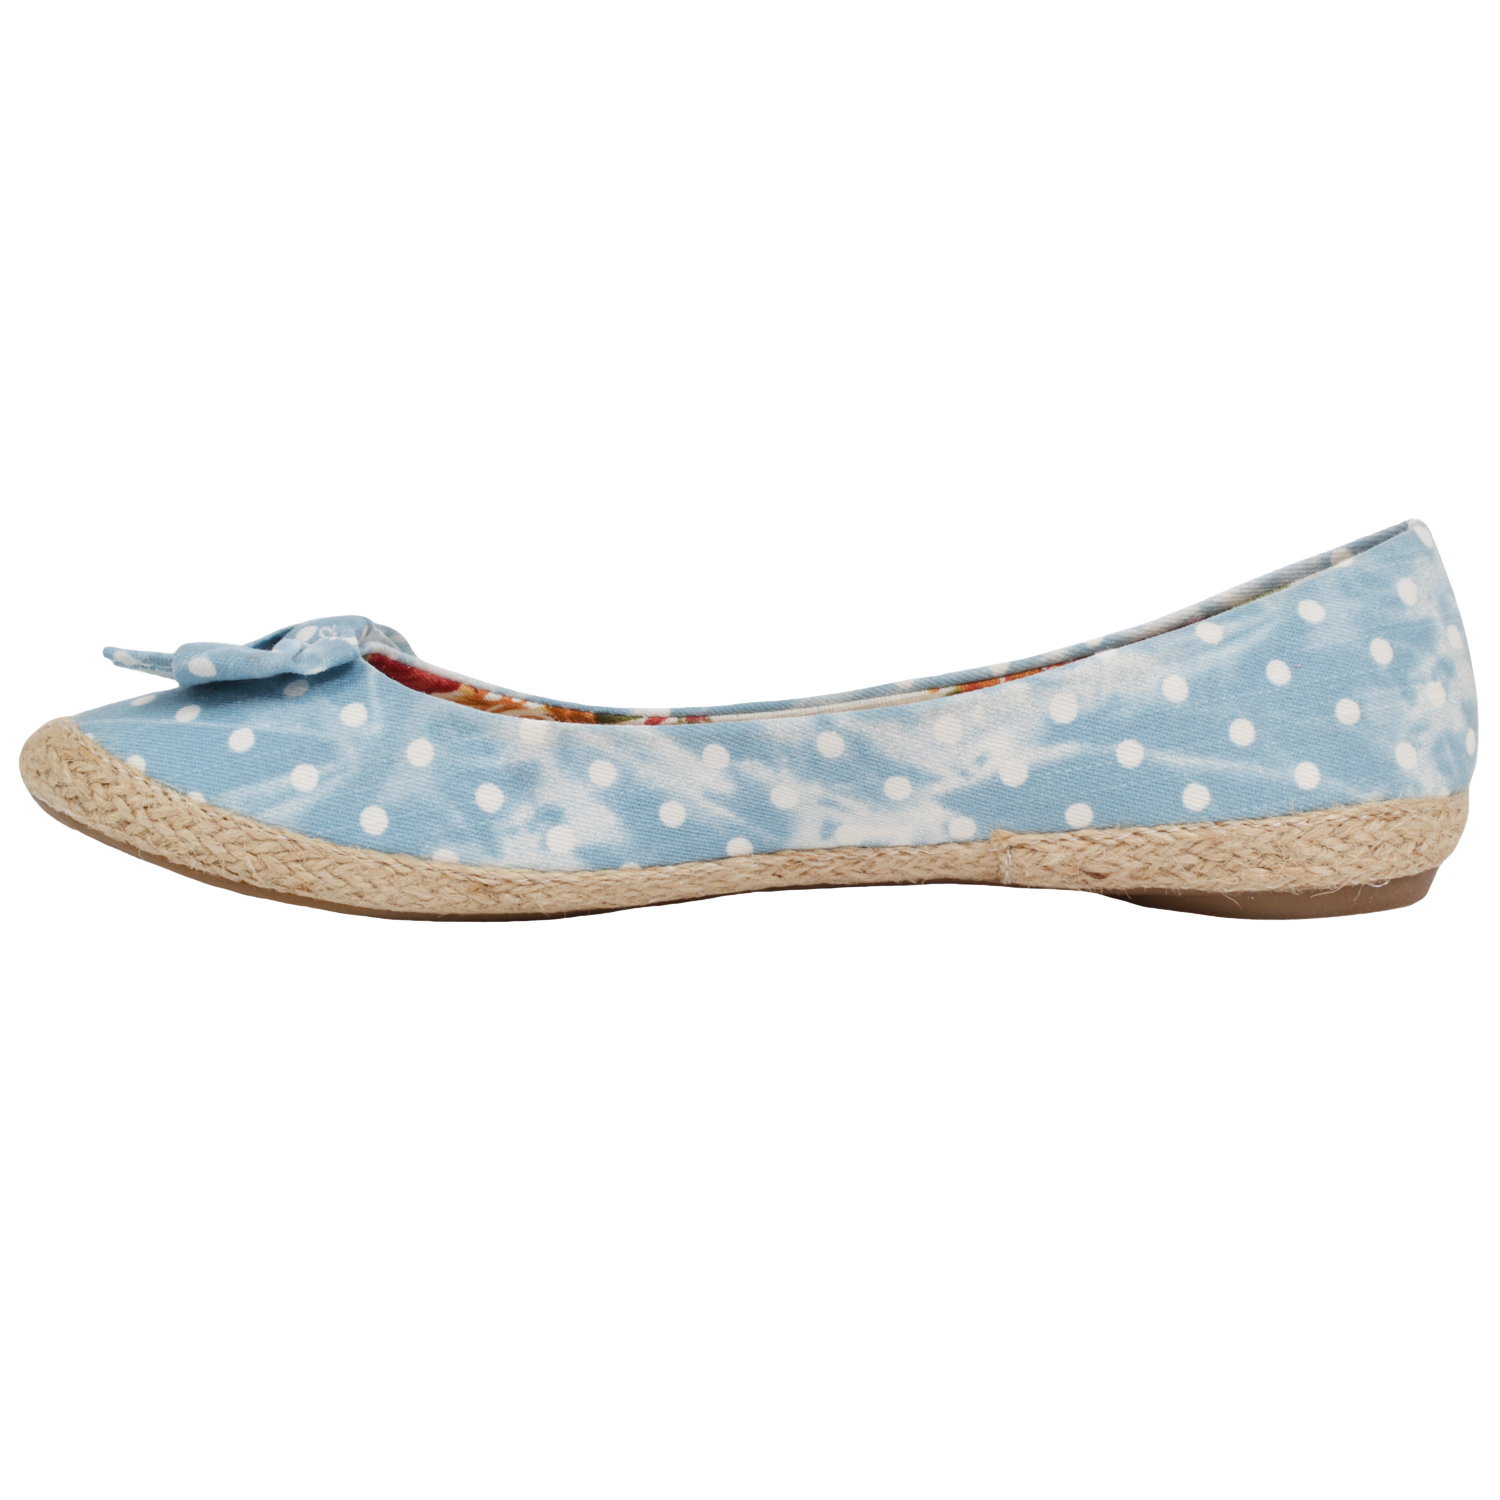 Shop for polka dot flats and other women's shoes products at ShapeShop. Browse our women's shoes selections and save today.